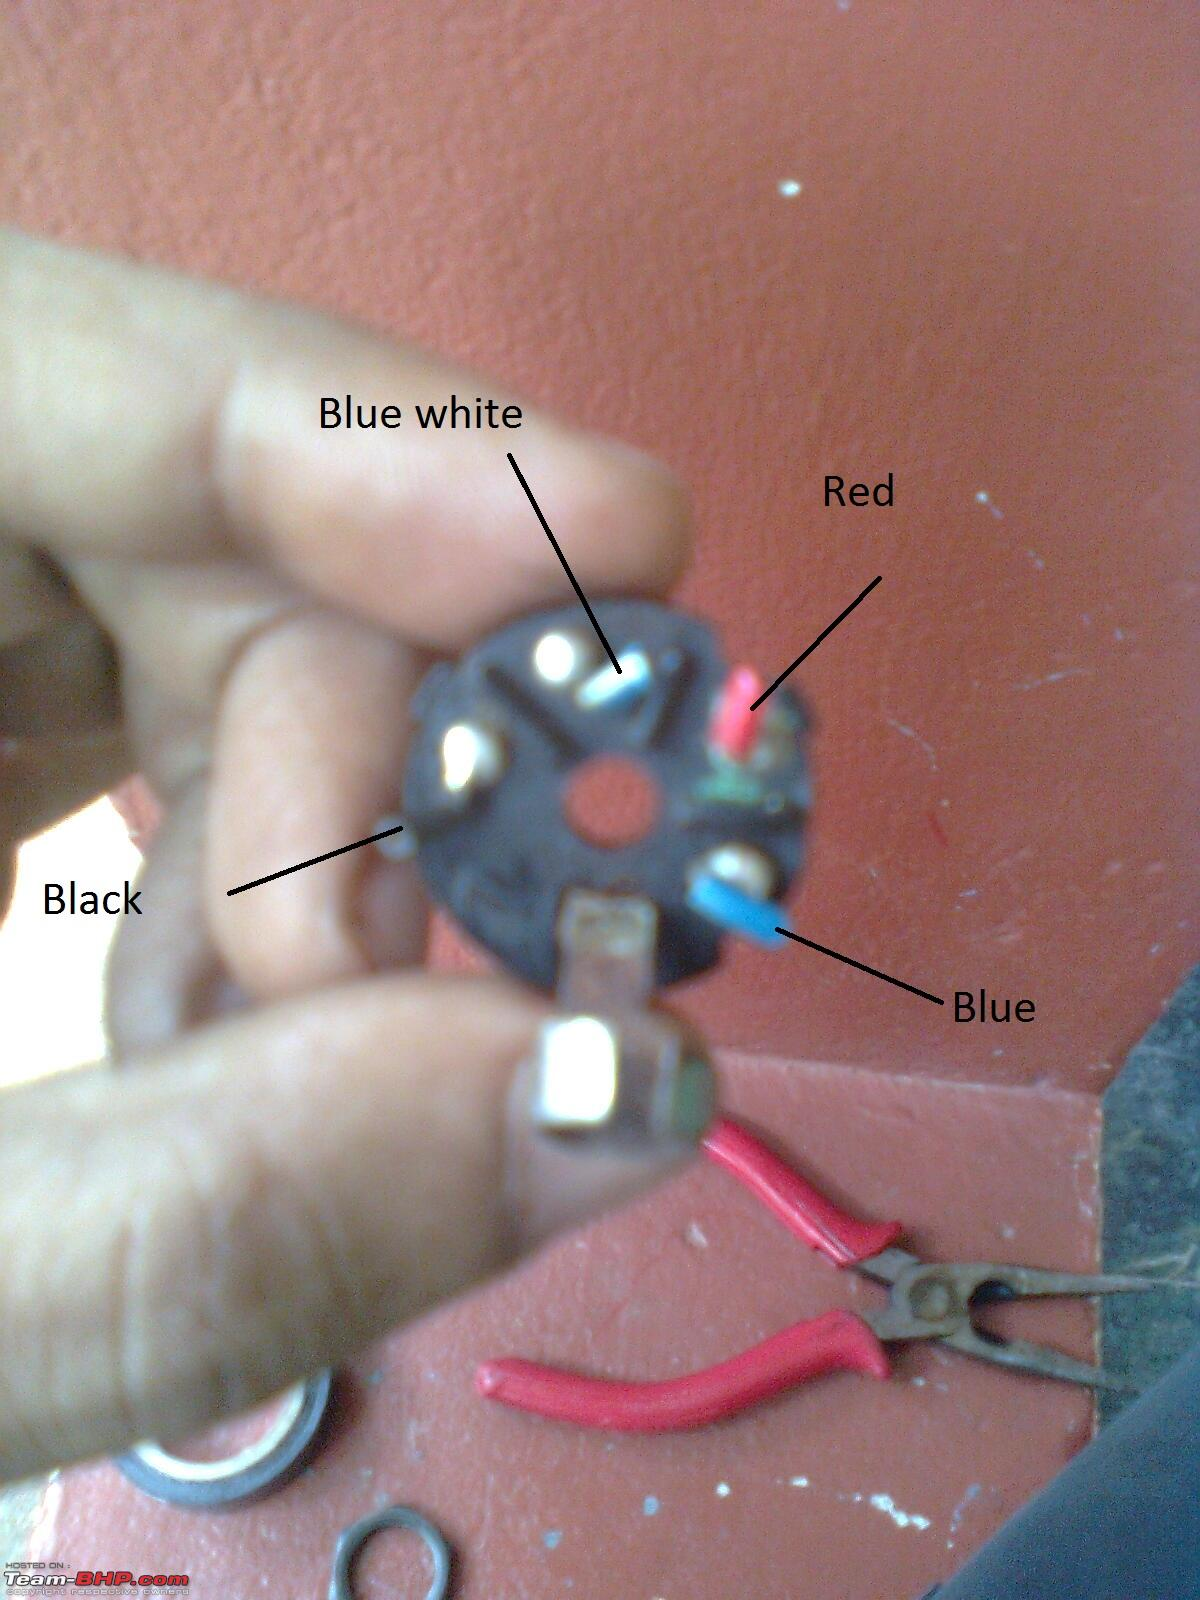 motorcycle wiring diagram human liver cell labeled diy: royal enfield bullet - ignition key assembly cleaning / replacing team-bhp